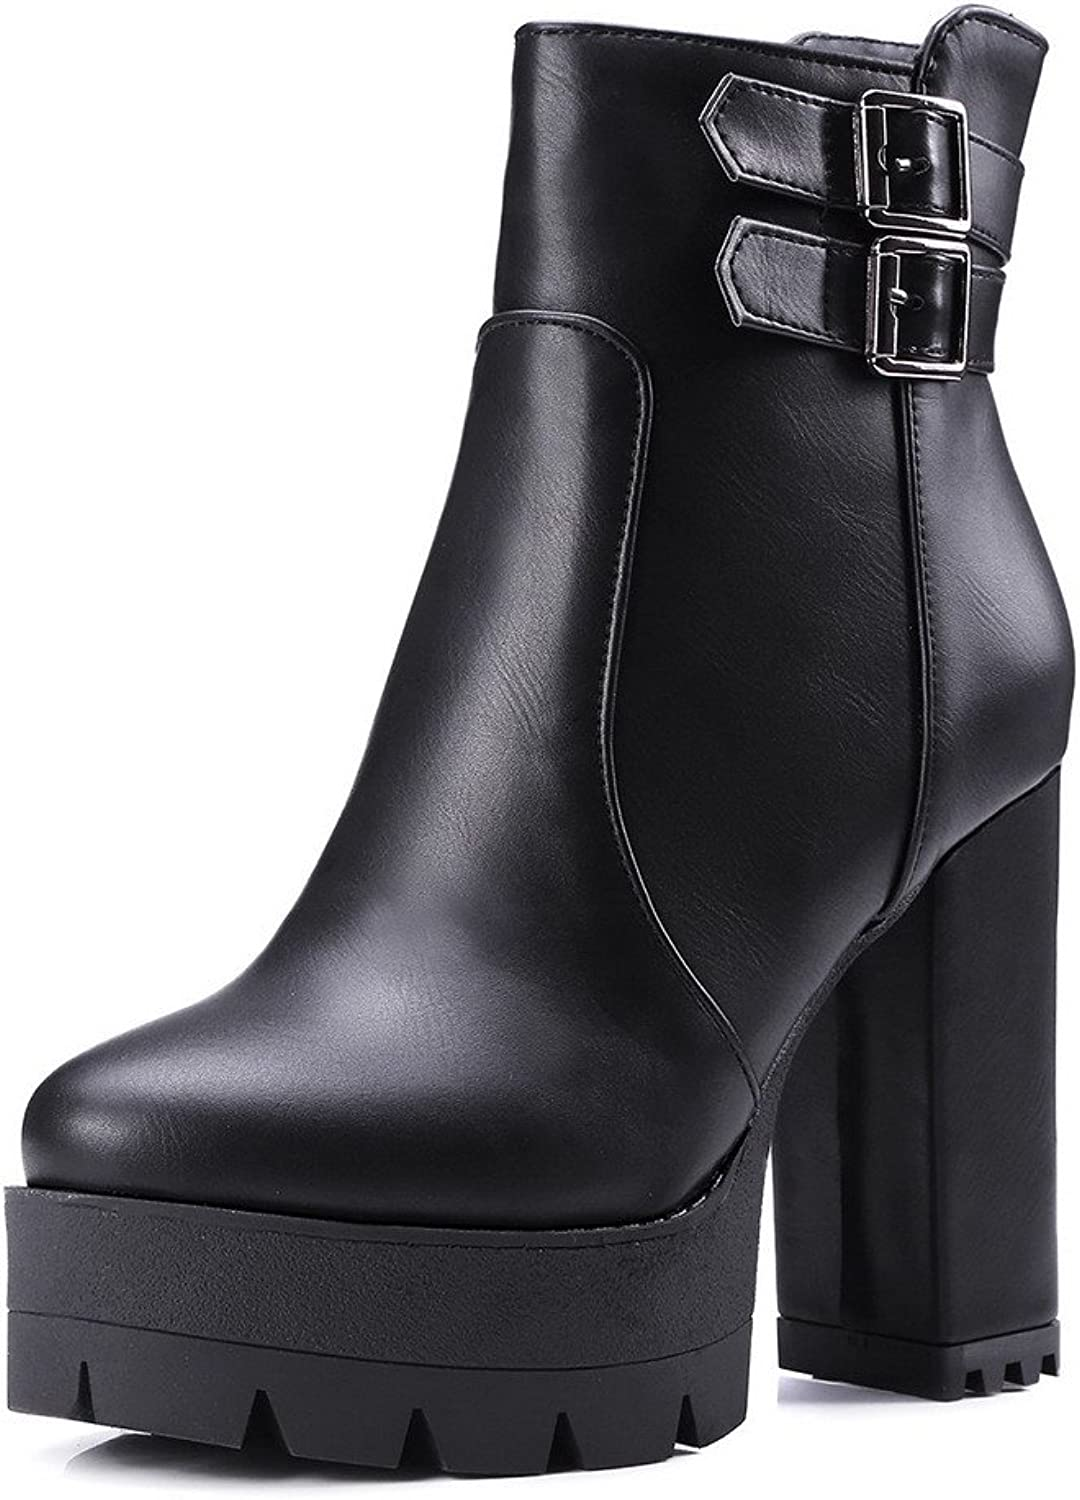 AllhqFashion Women's Round Closed Toe High Heels Low-Top Solid Boots